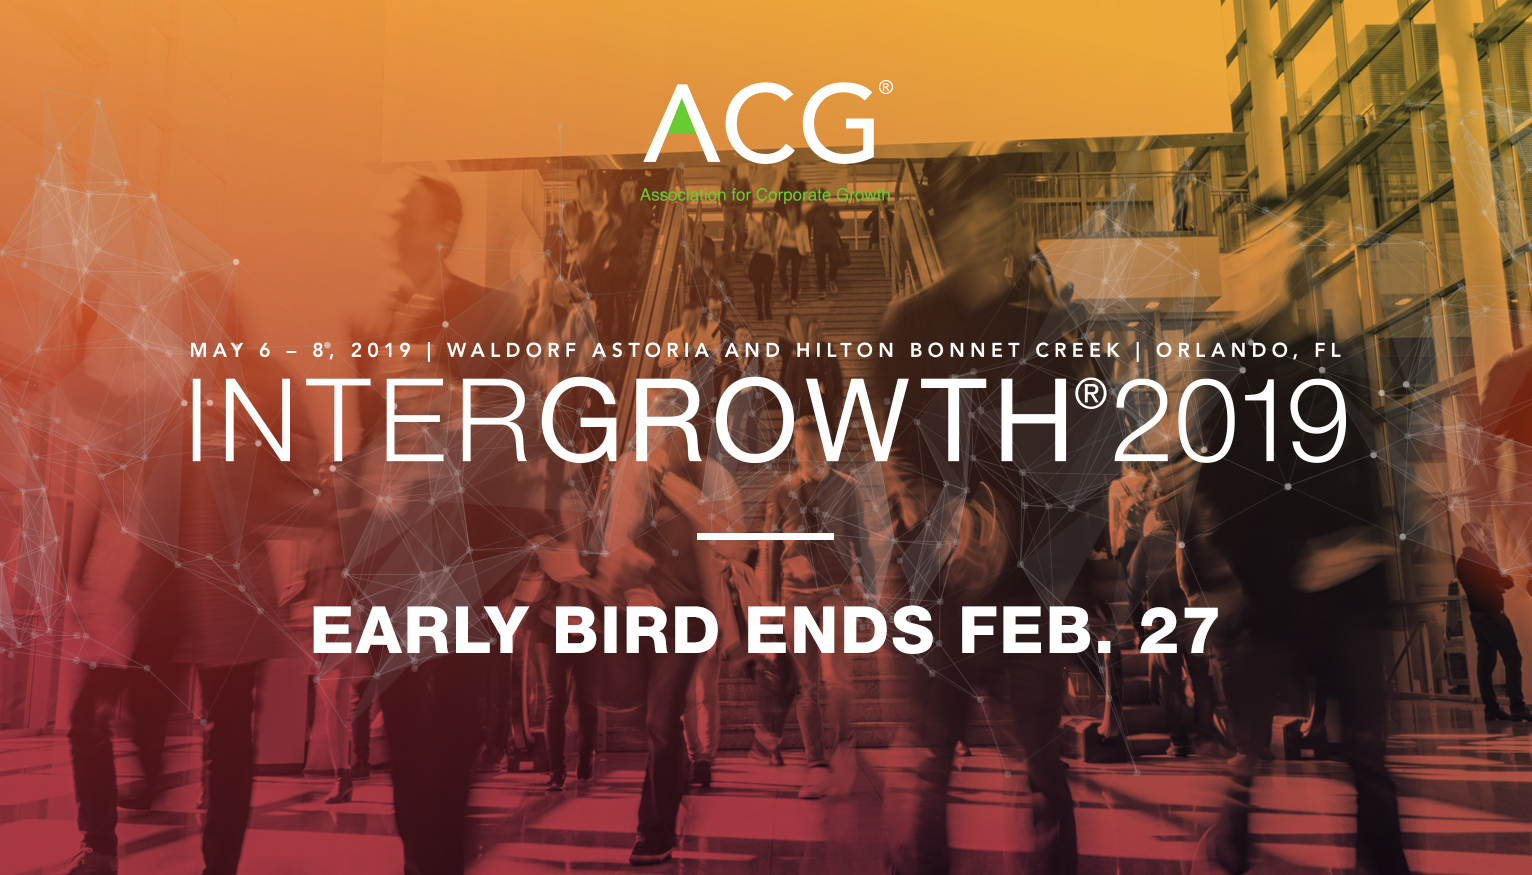 InterGrowth 2019 | Early Bird Ends Feb. 27